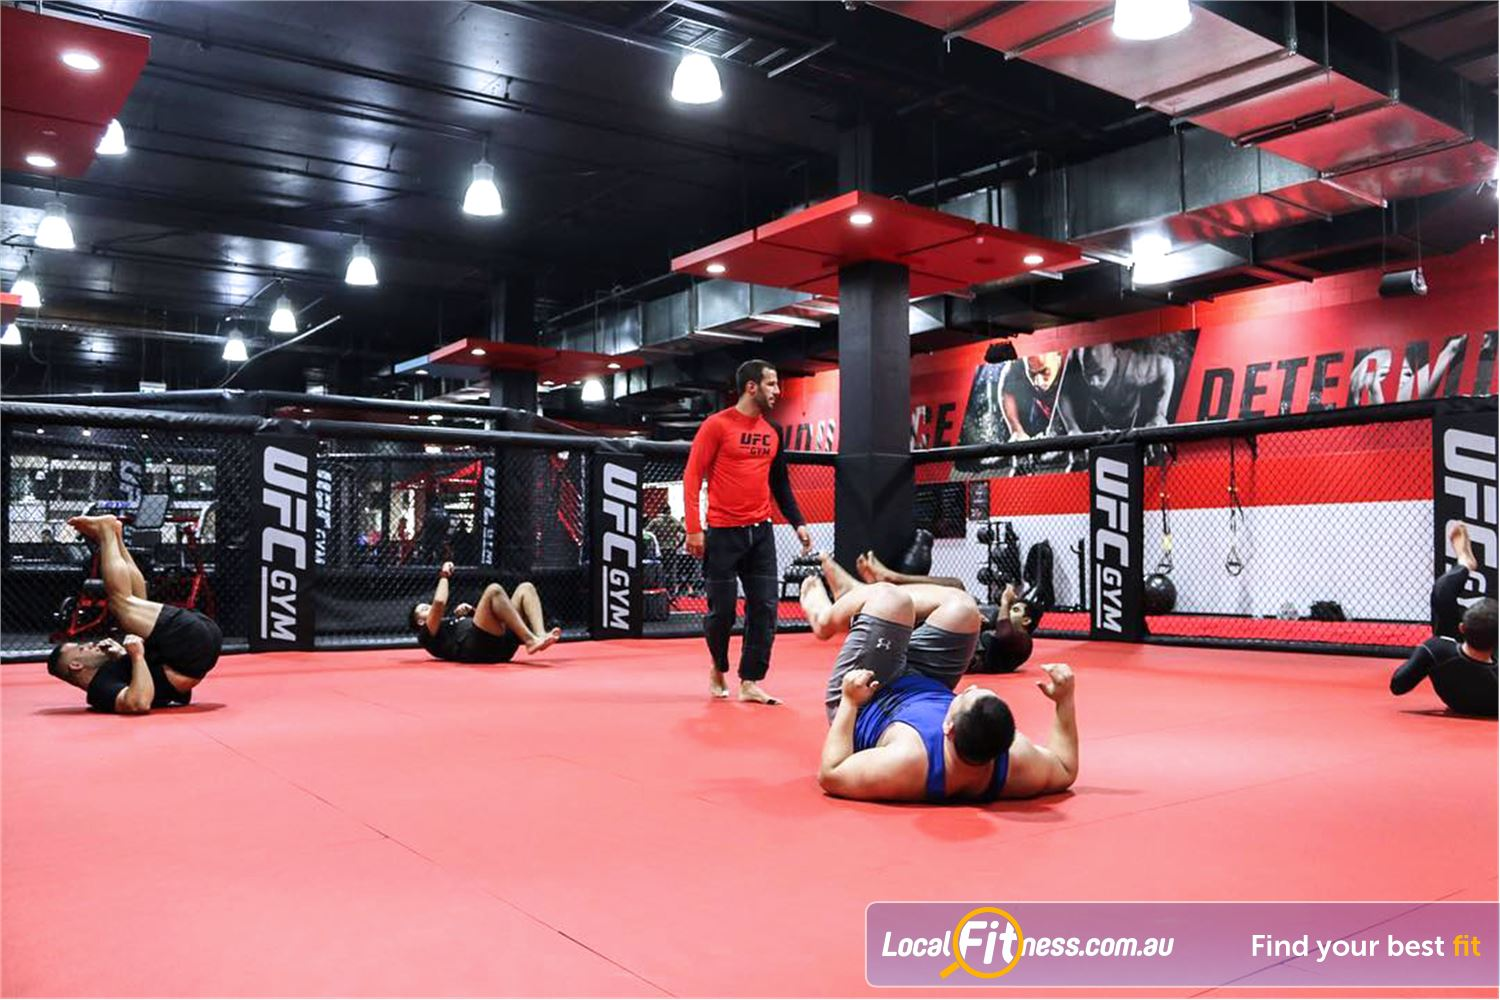 UFC Gym Near Marayong #traindifferent and learn the winning mentality of UFC to reach your goals.